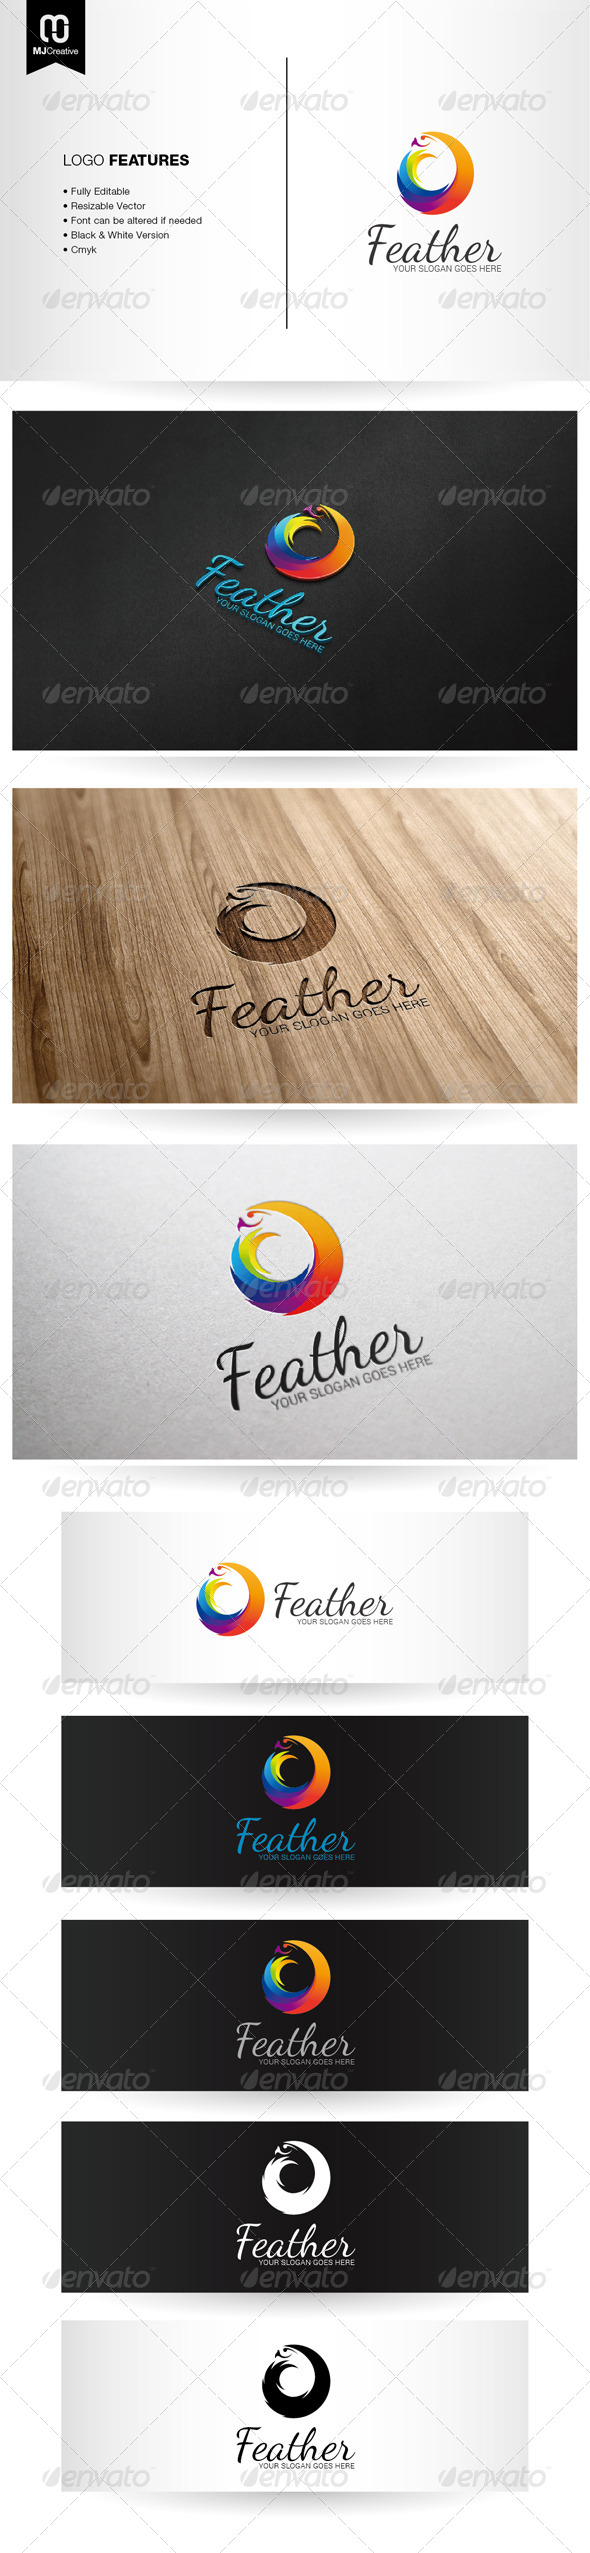 Abstract Colorful Bird Logo - Vector Abstract